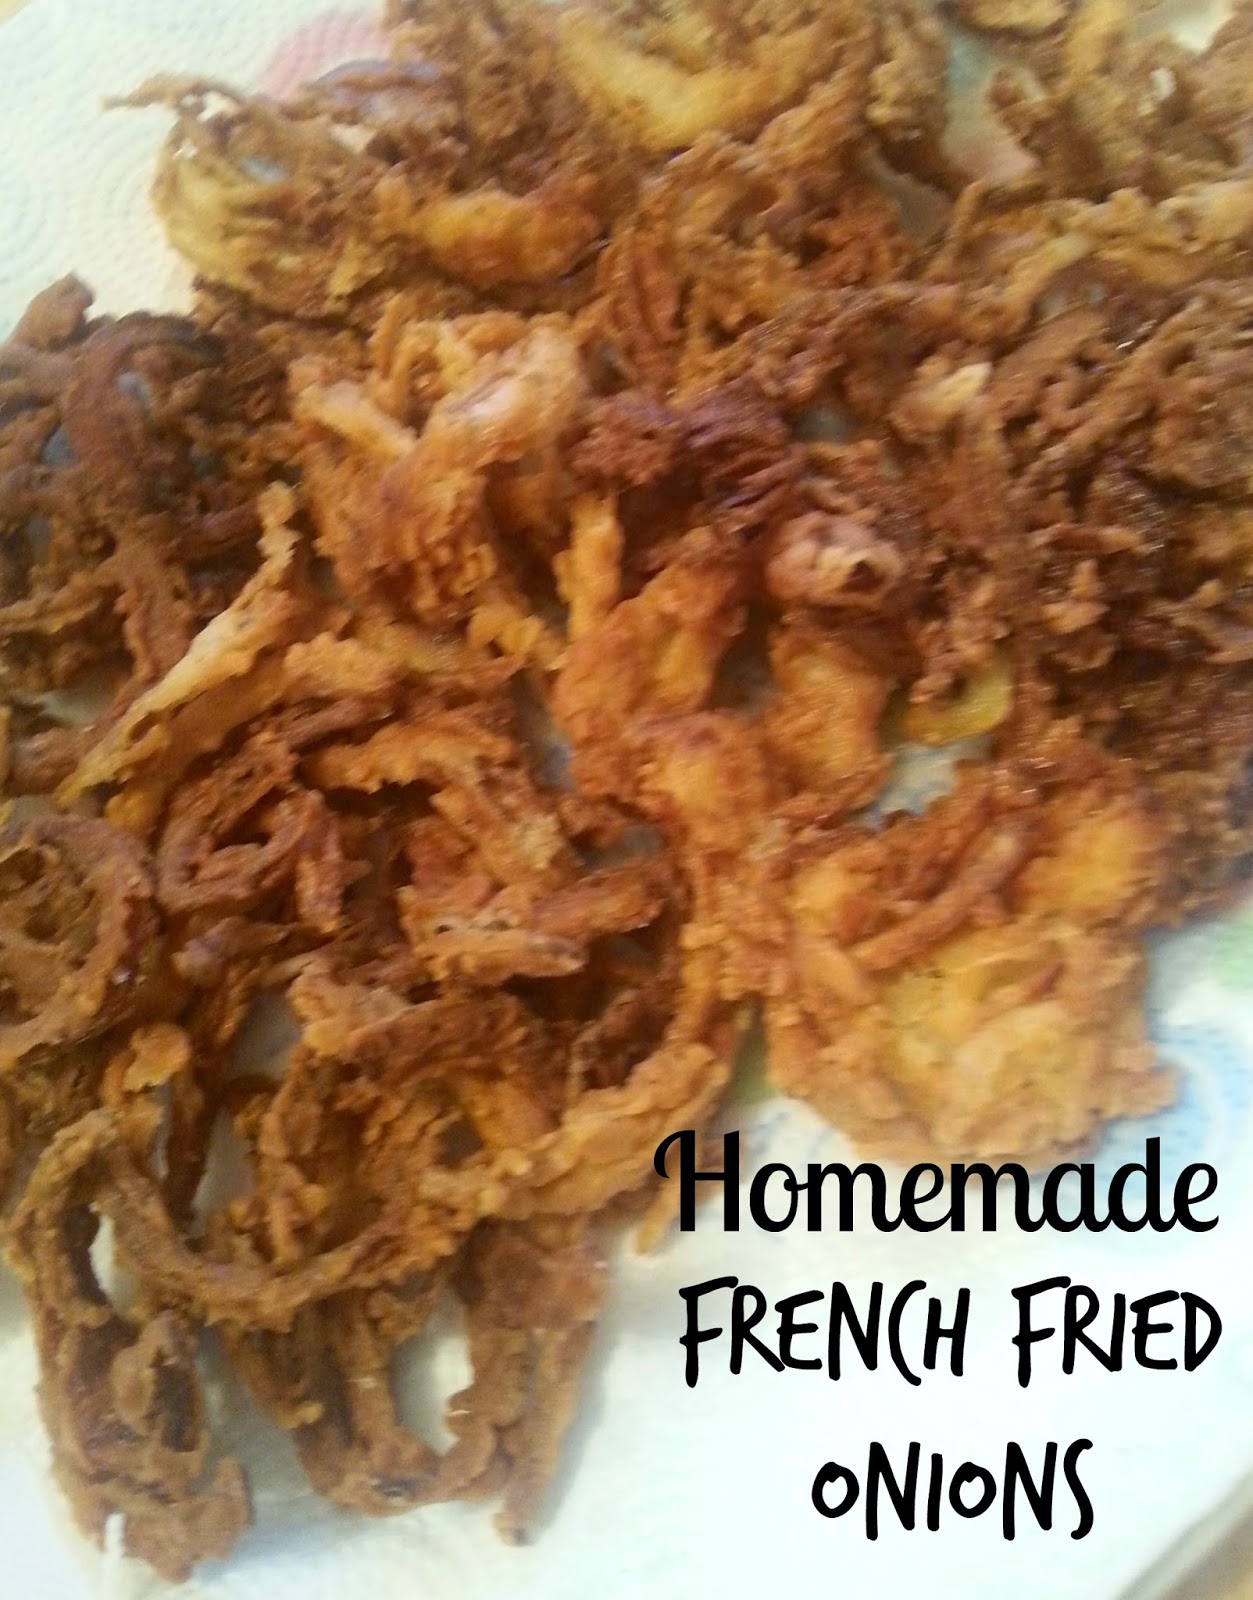 ... onion rings french fried onions recipes yummly french fries or onion